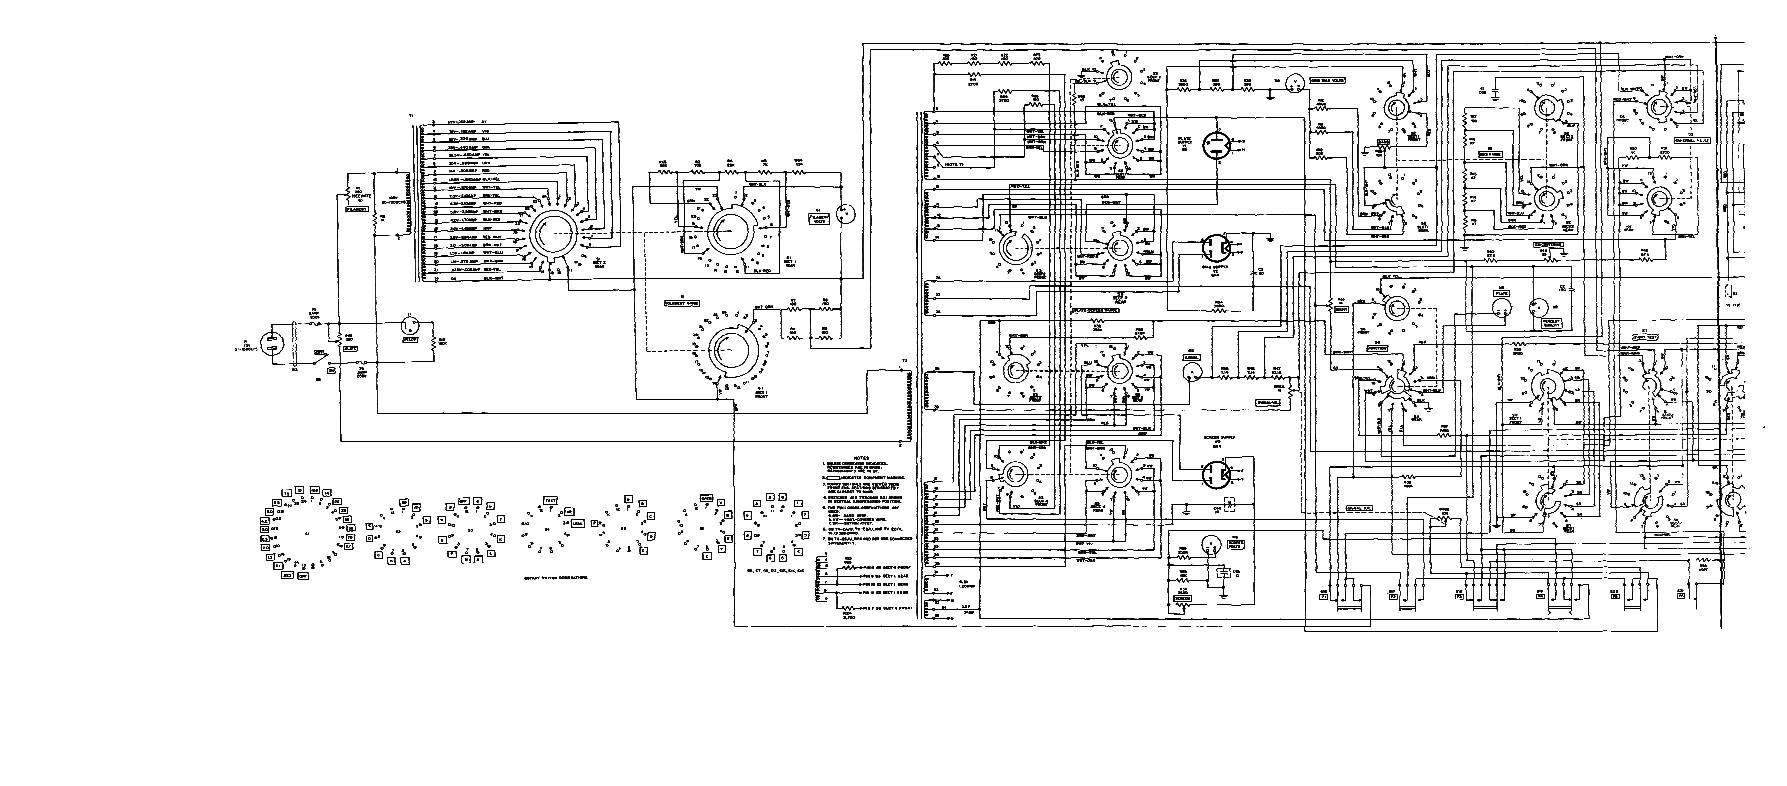 hight resolution of schematic diagram wiring diagram samsung schematic circuit diagram lm3915 schematic diagrams of tv schematic diagrams